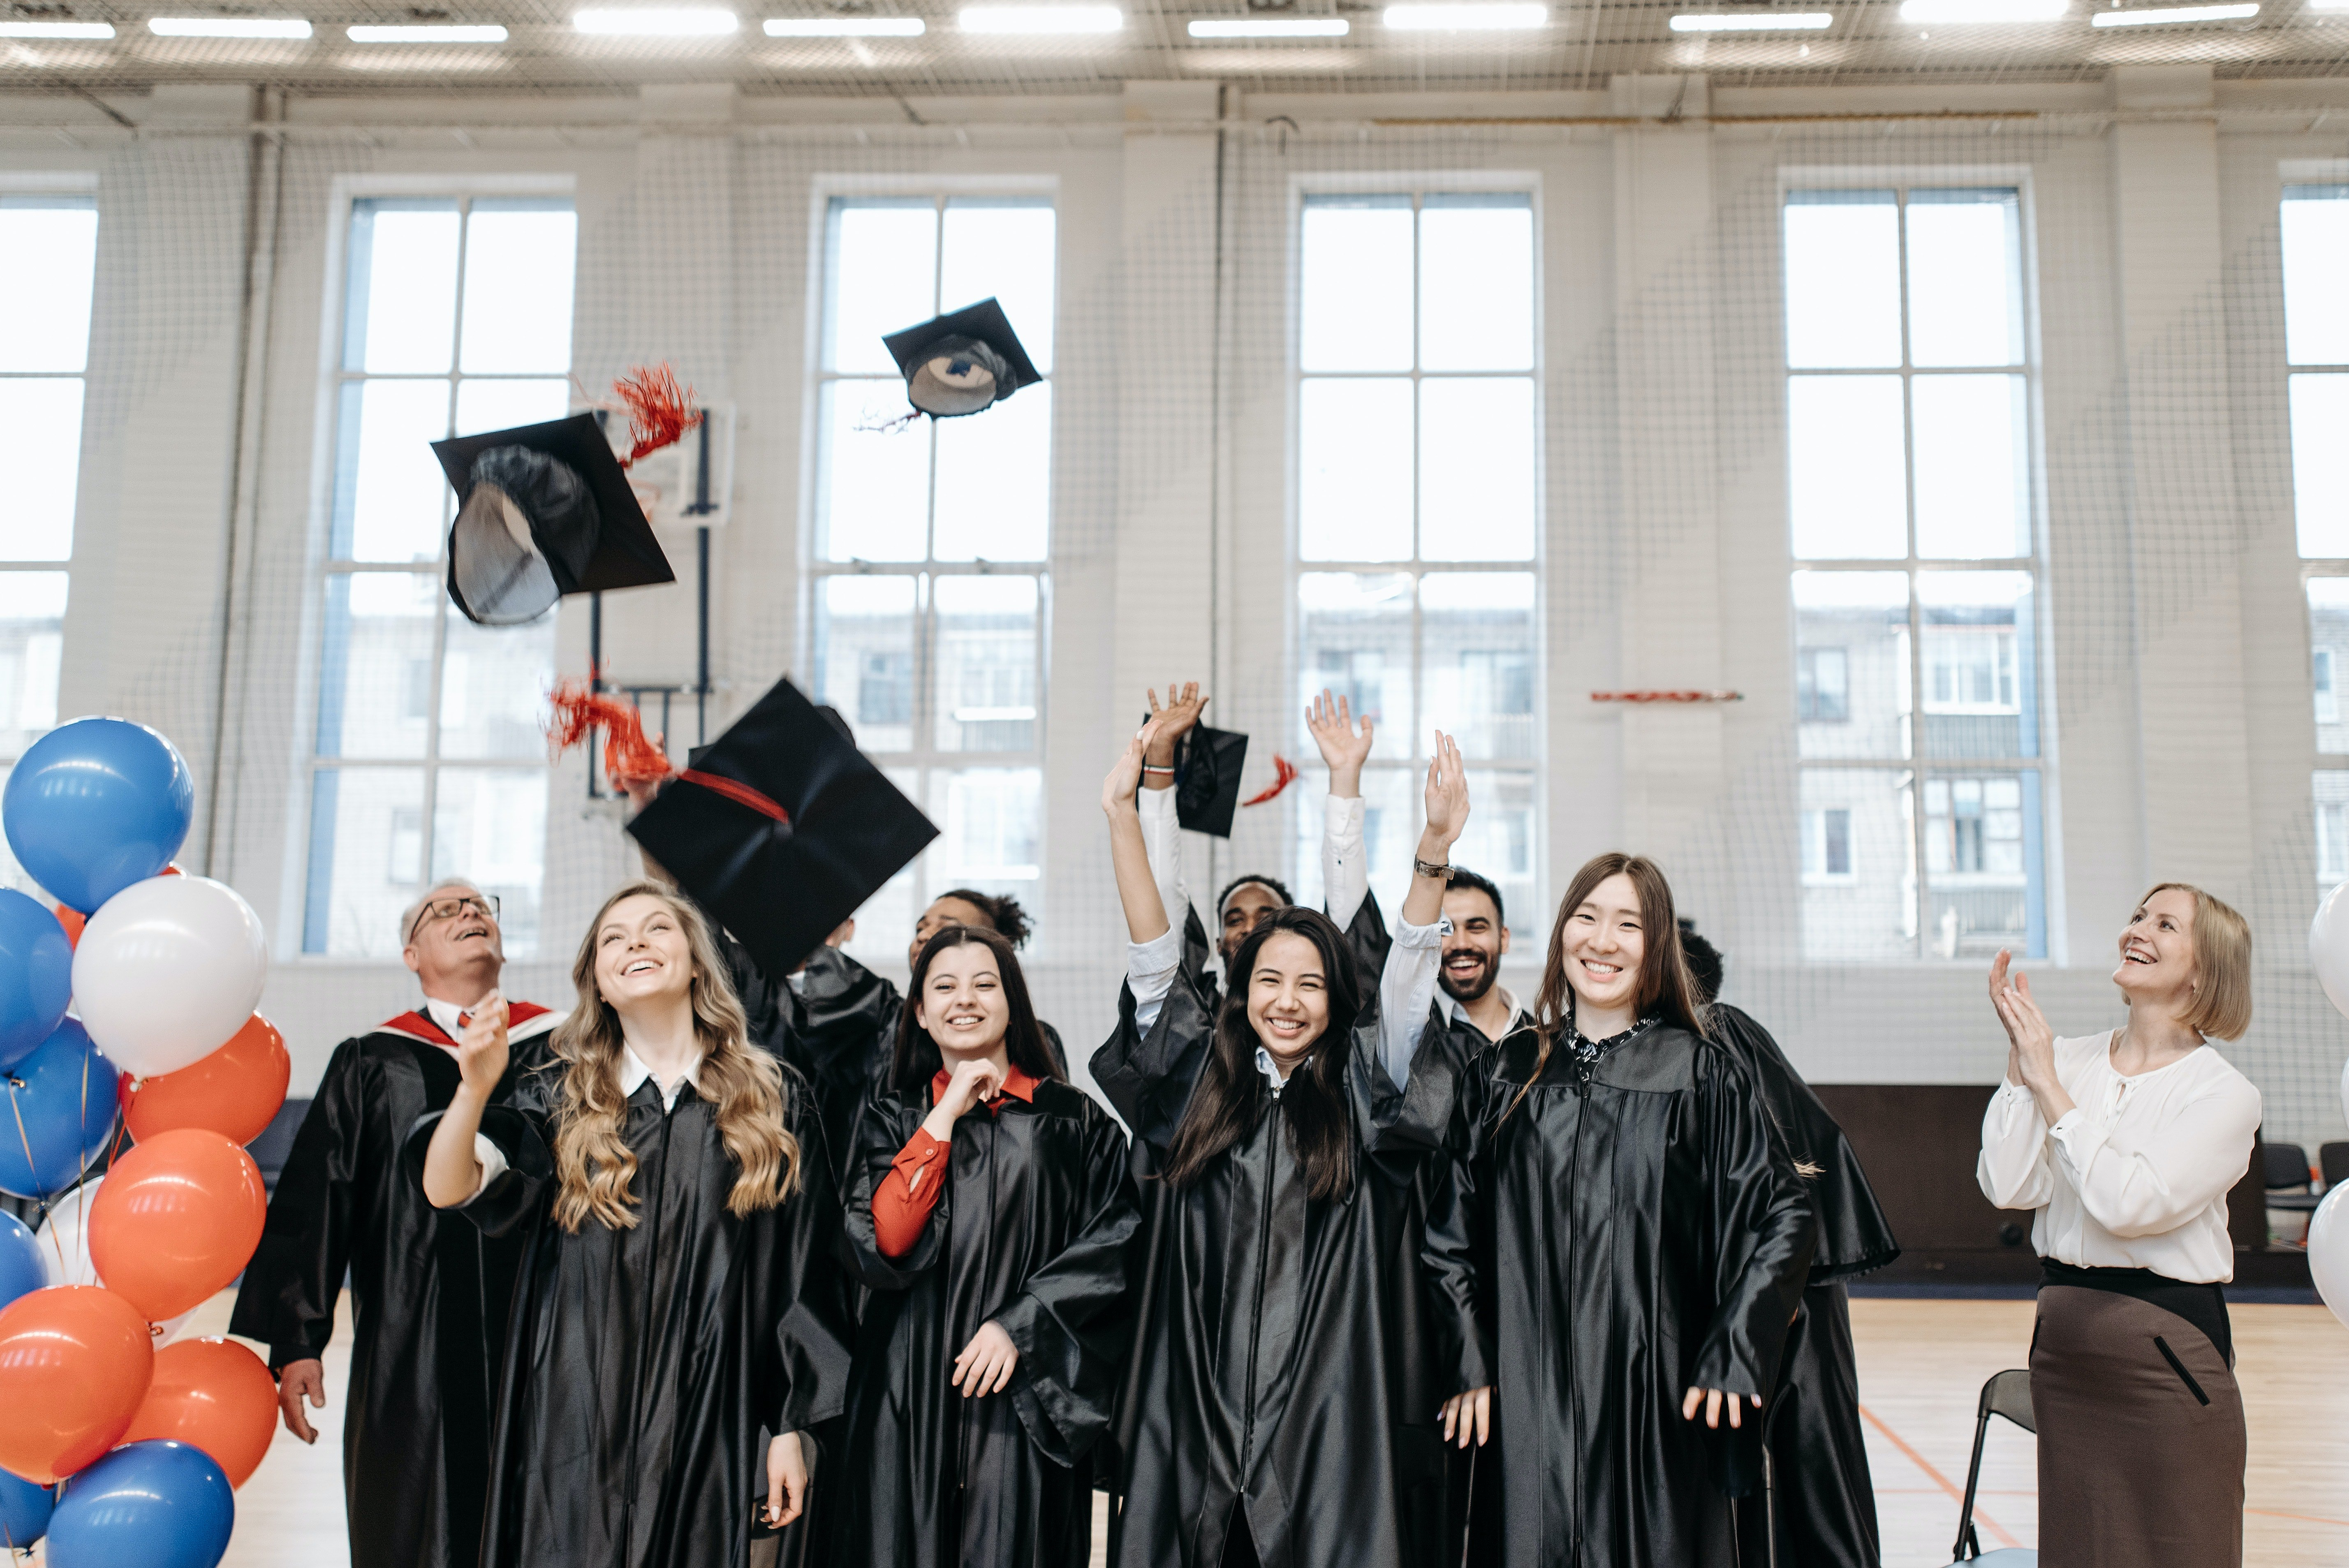 Students after receiving their high school diplomas | Source: Pexels